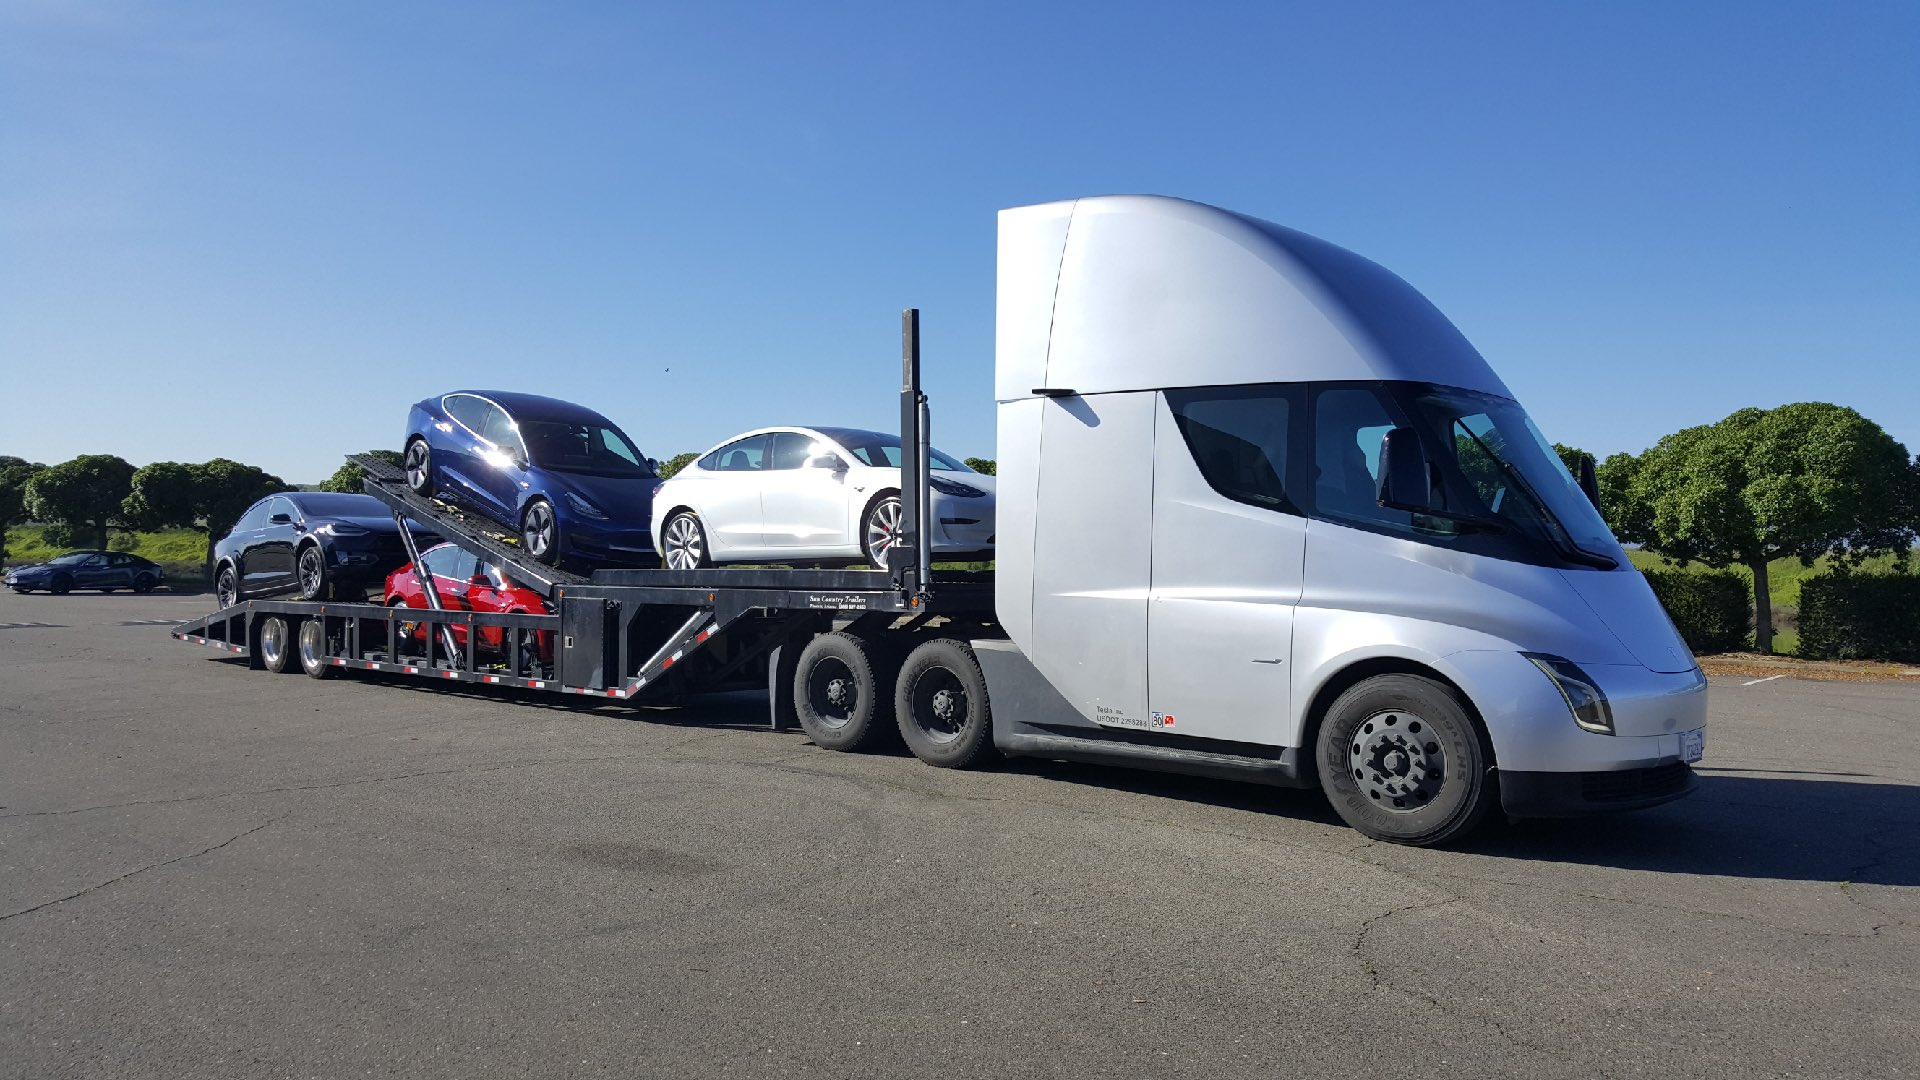 Tesla Semi Truck carrying Tesla cars on its carrier trailer.